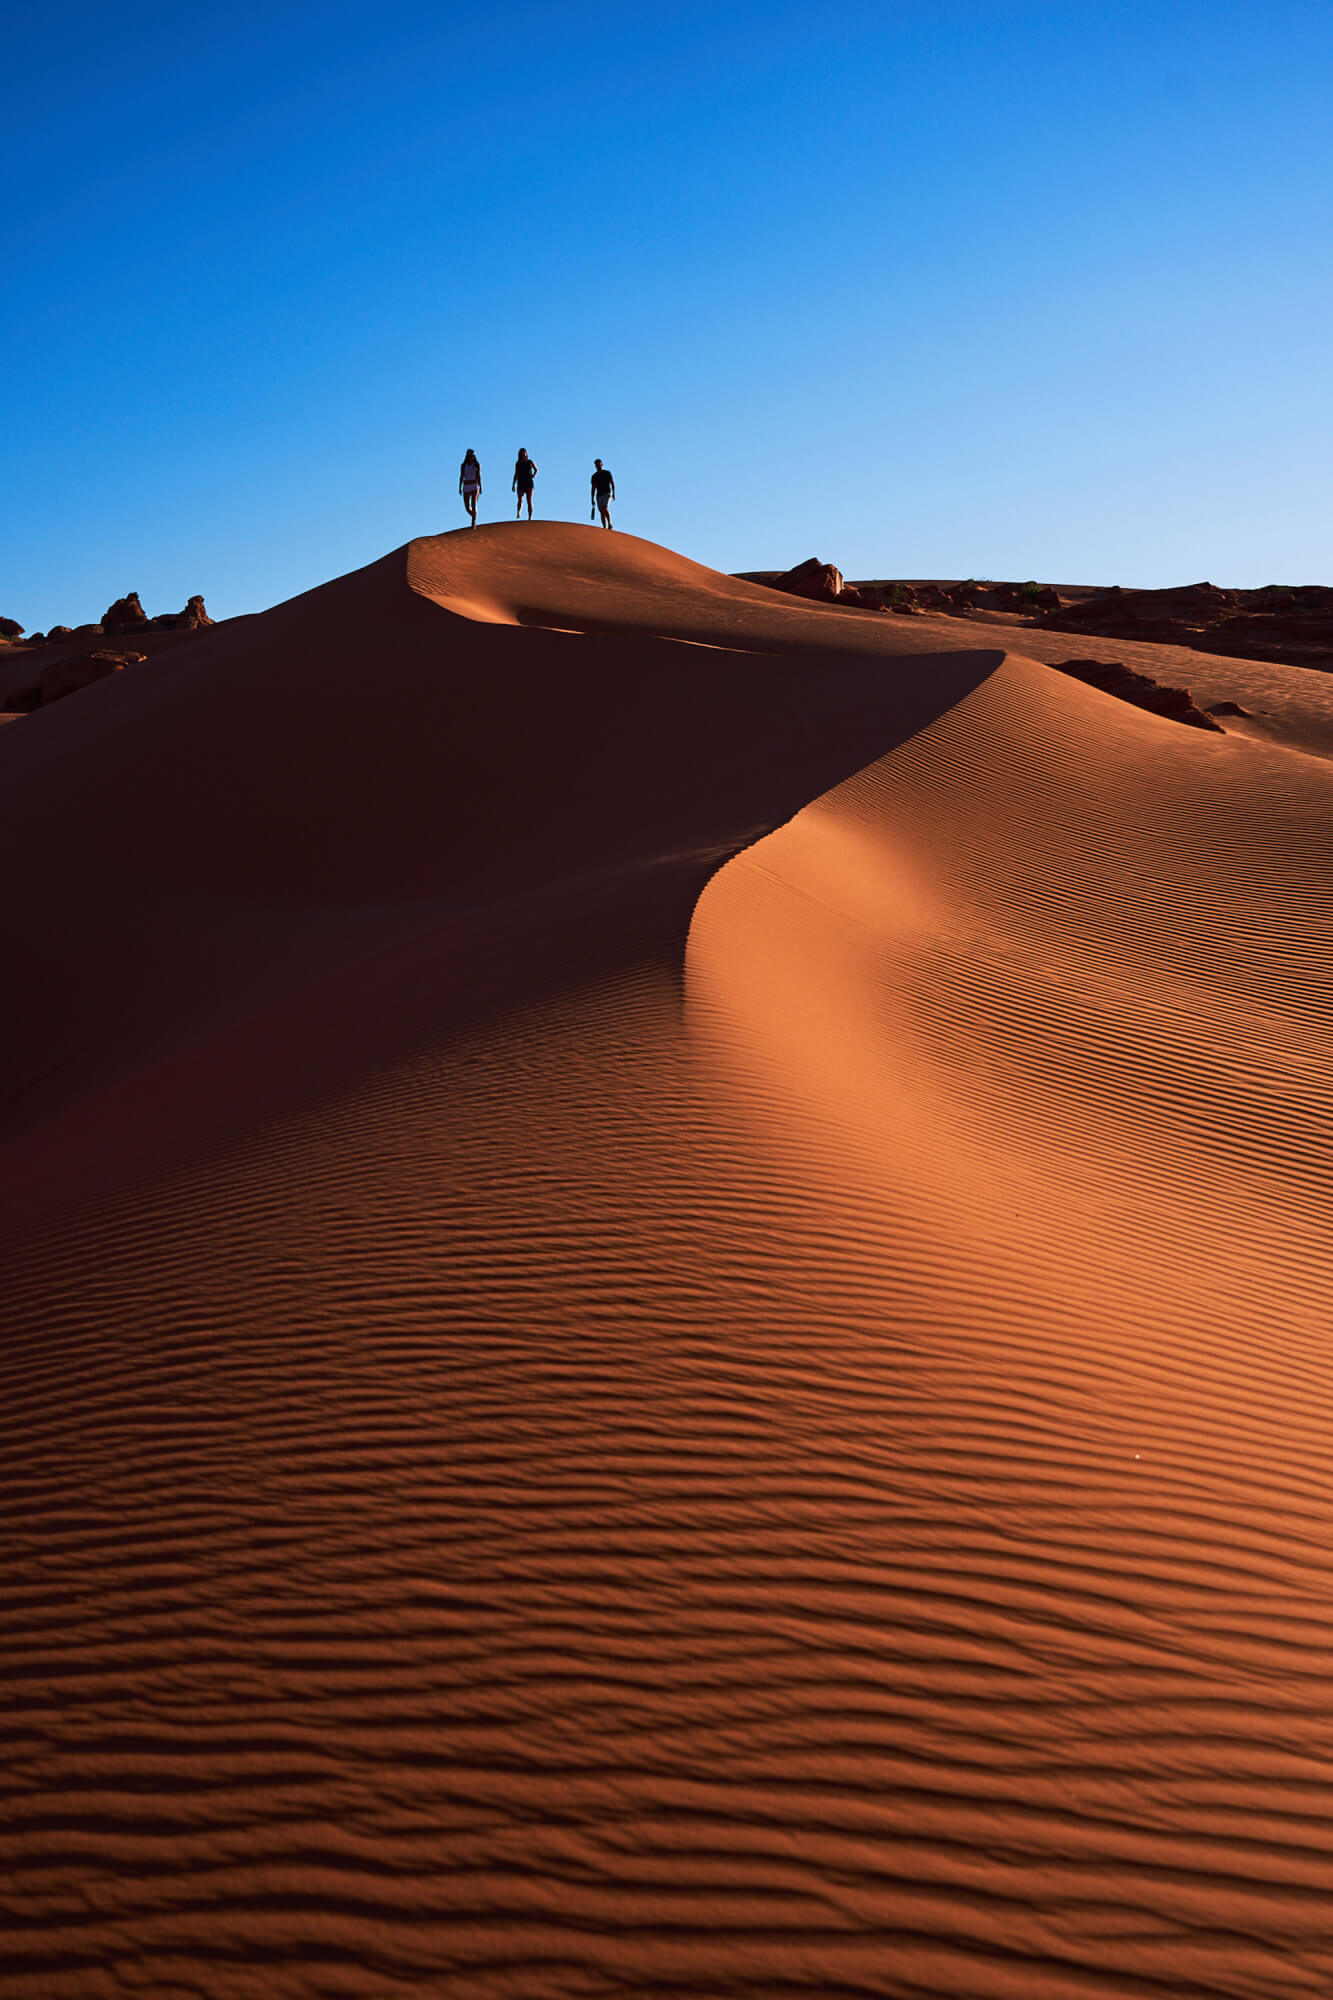 A man and two women walking atop sand dunes